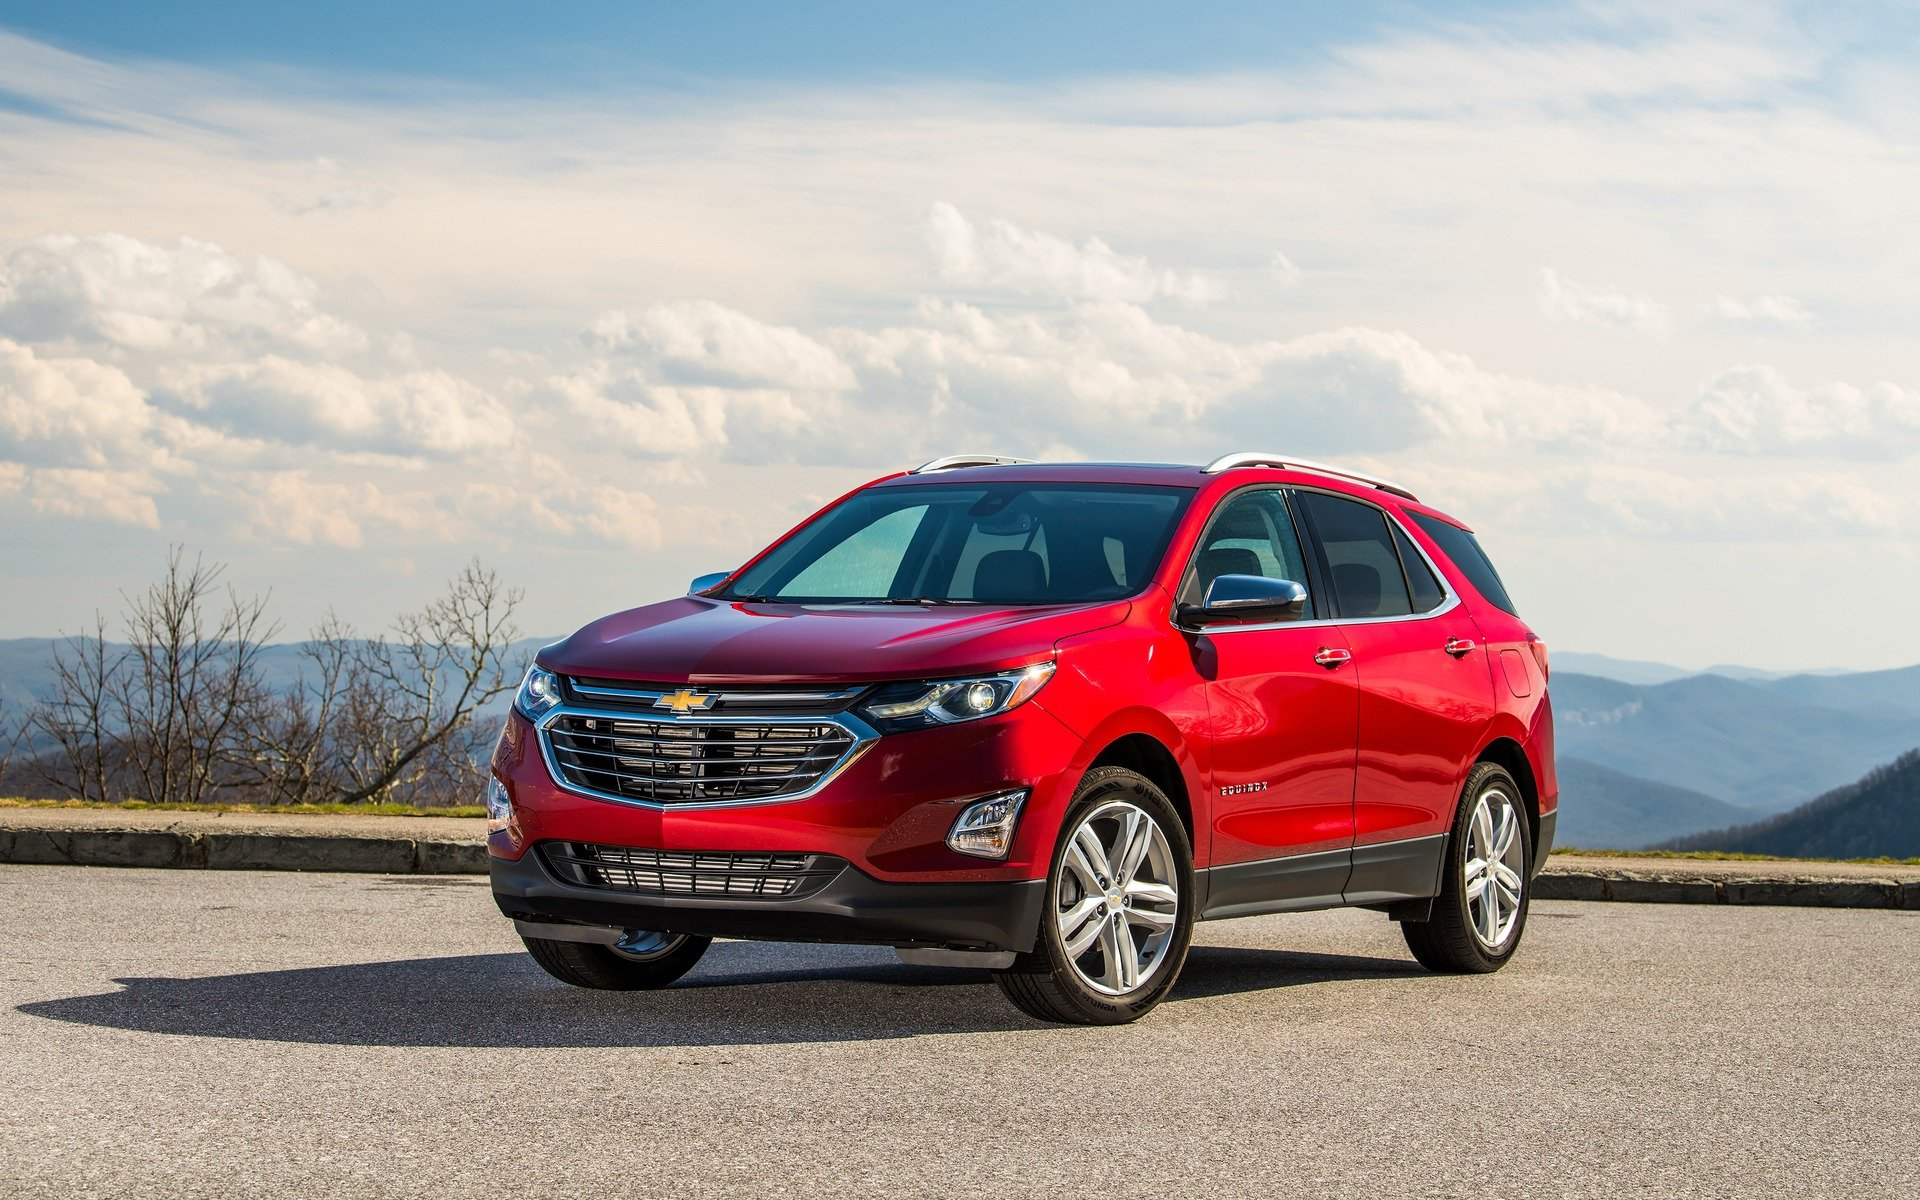 Chevrolet Equinox Best-selling SUVs